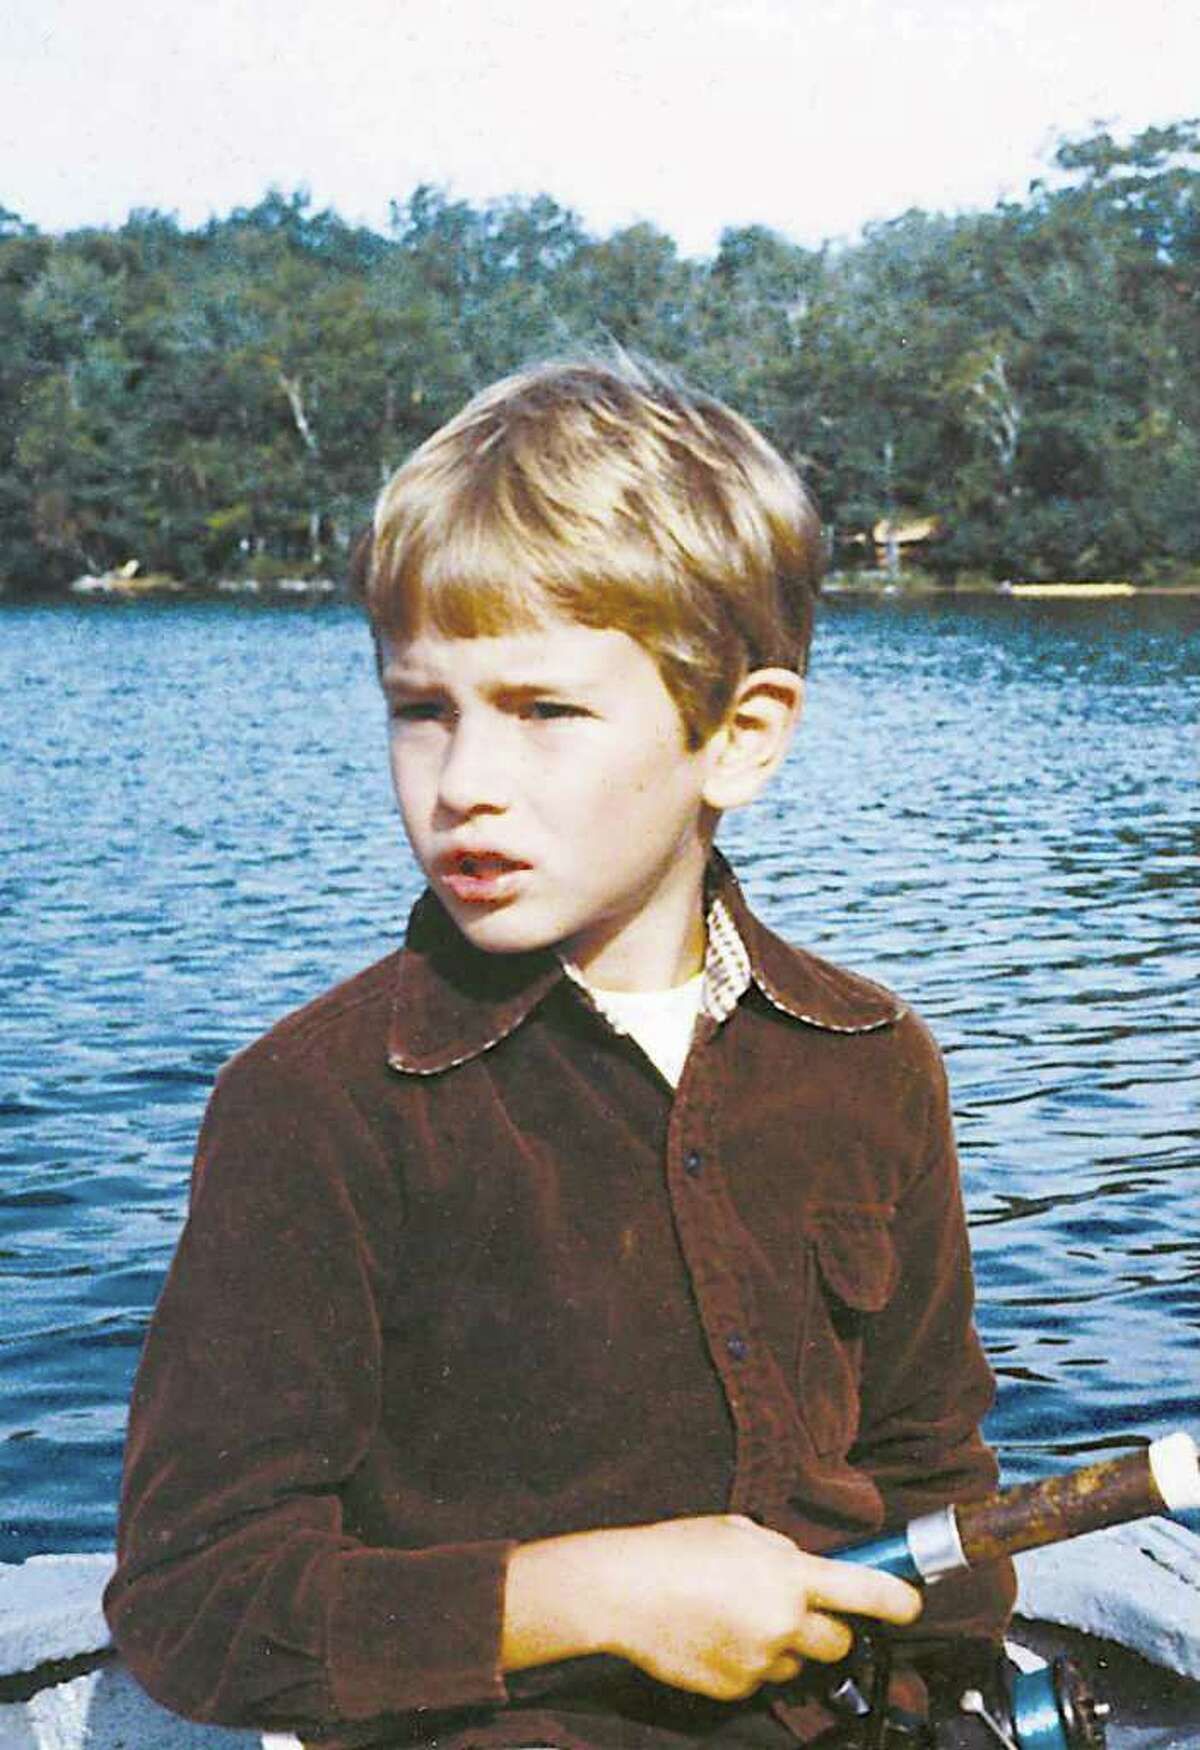 Matthew Margolies, shown here in 1982. Margolies was murdered in 1984. The case remains unsolved.